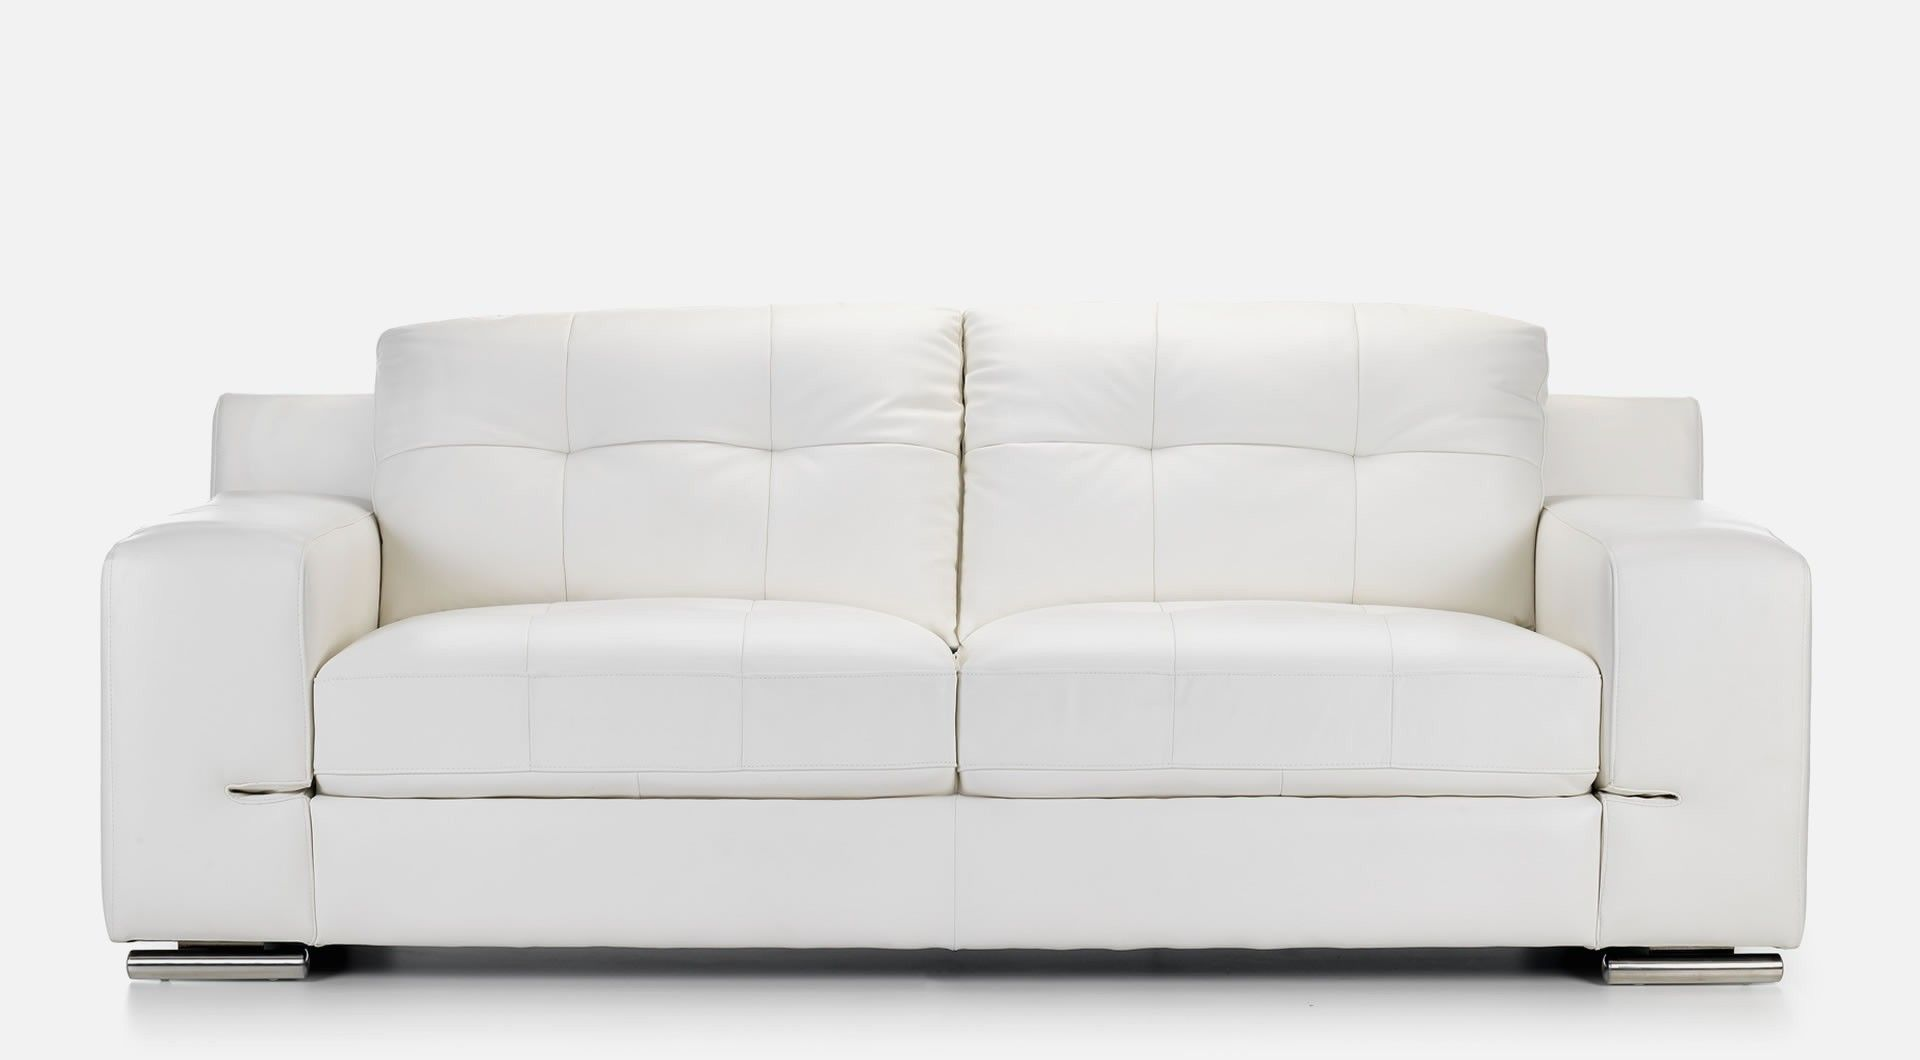 White Company Sofa Throws How Long Should Table Be Pin By Selbicconsult On Modern Leather